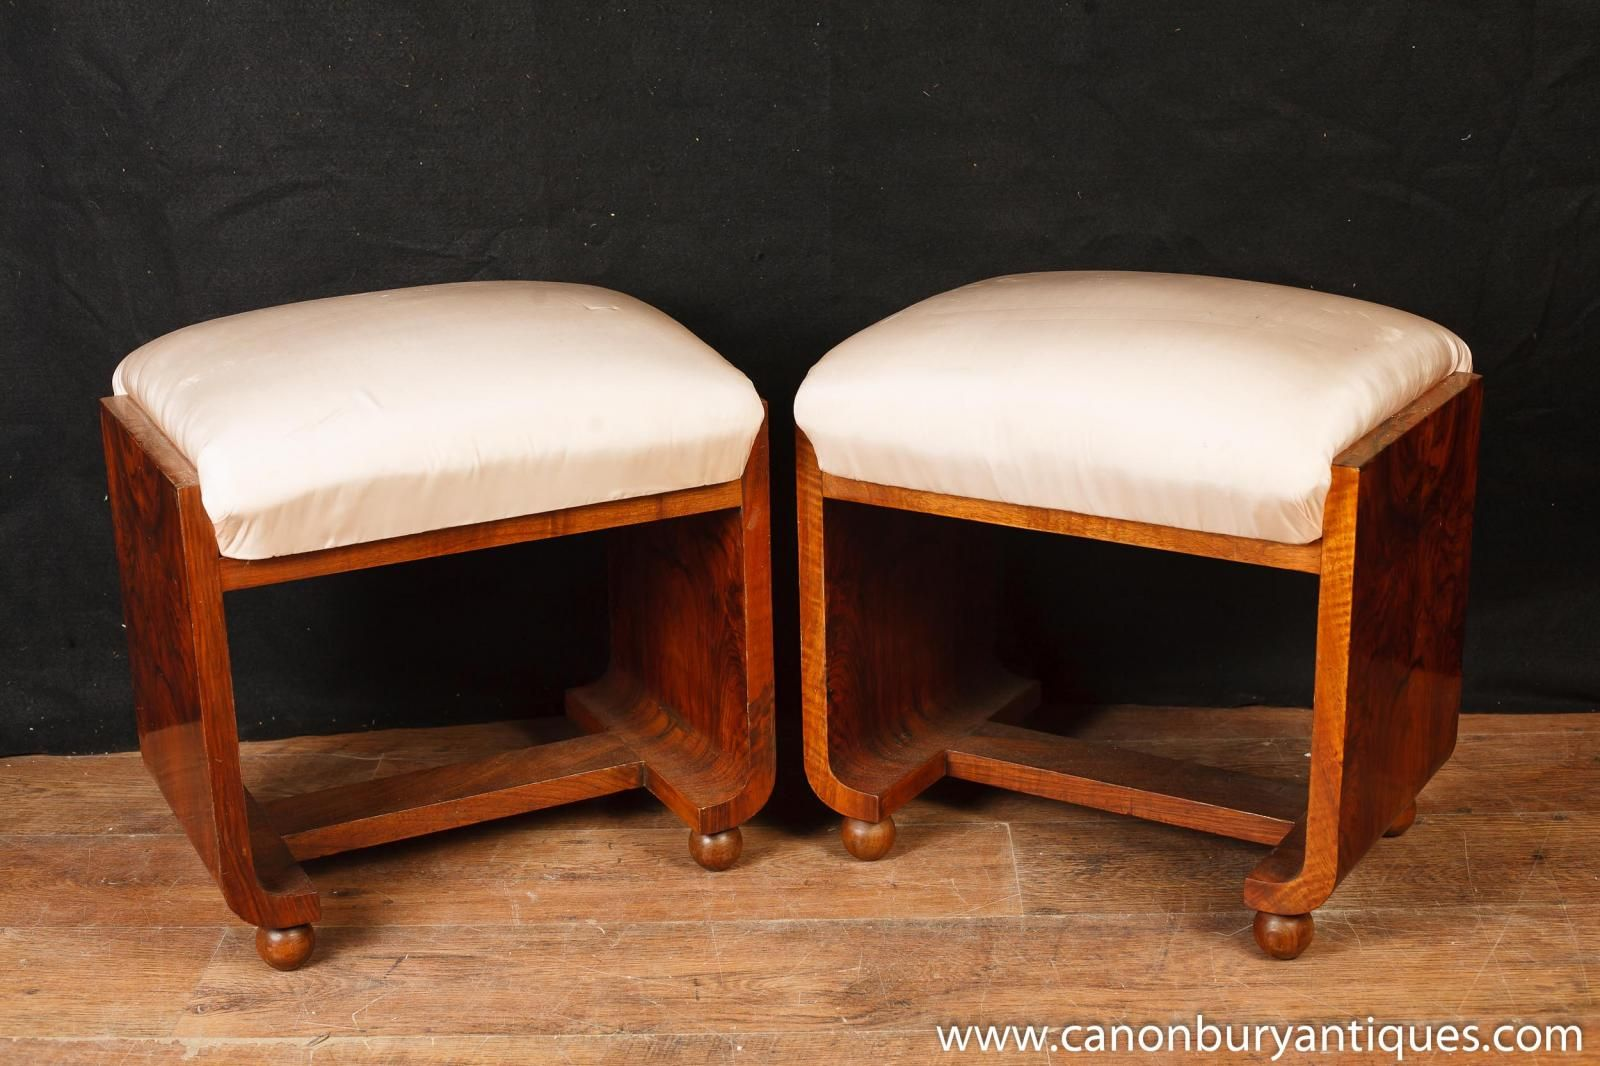 of Pair Art Deco Stools Stool Seat Chair 1920s Furniture